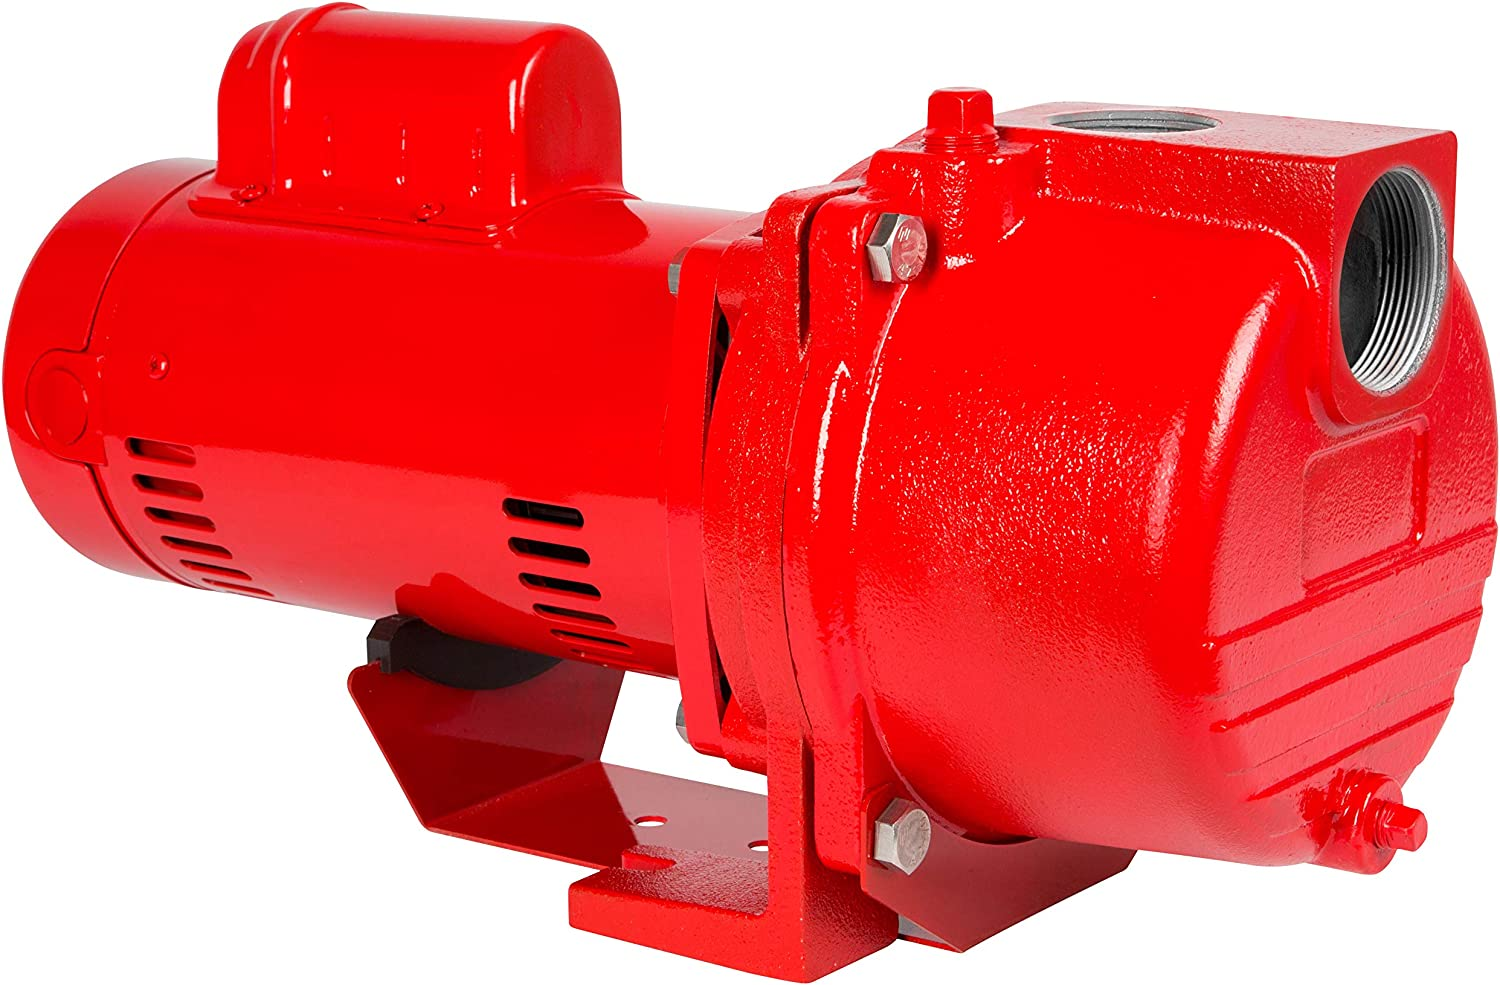 Red Lion RL-SPRK150 lawn-sprinkler-pumps